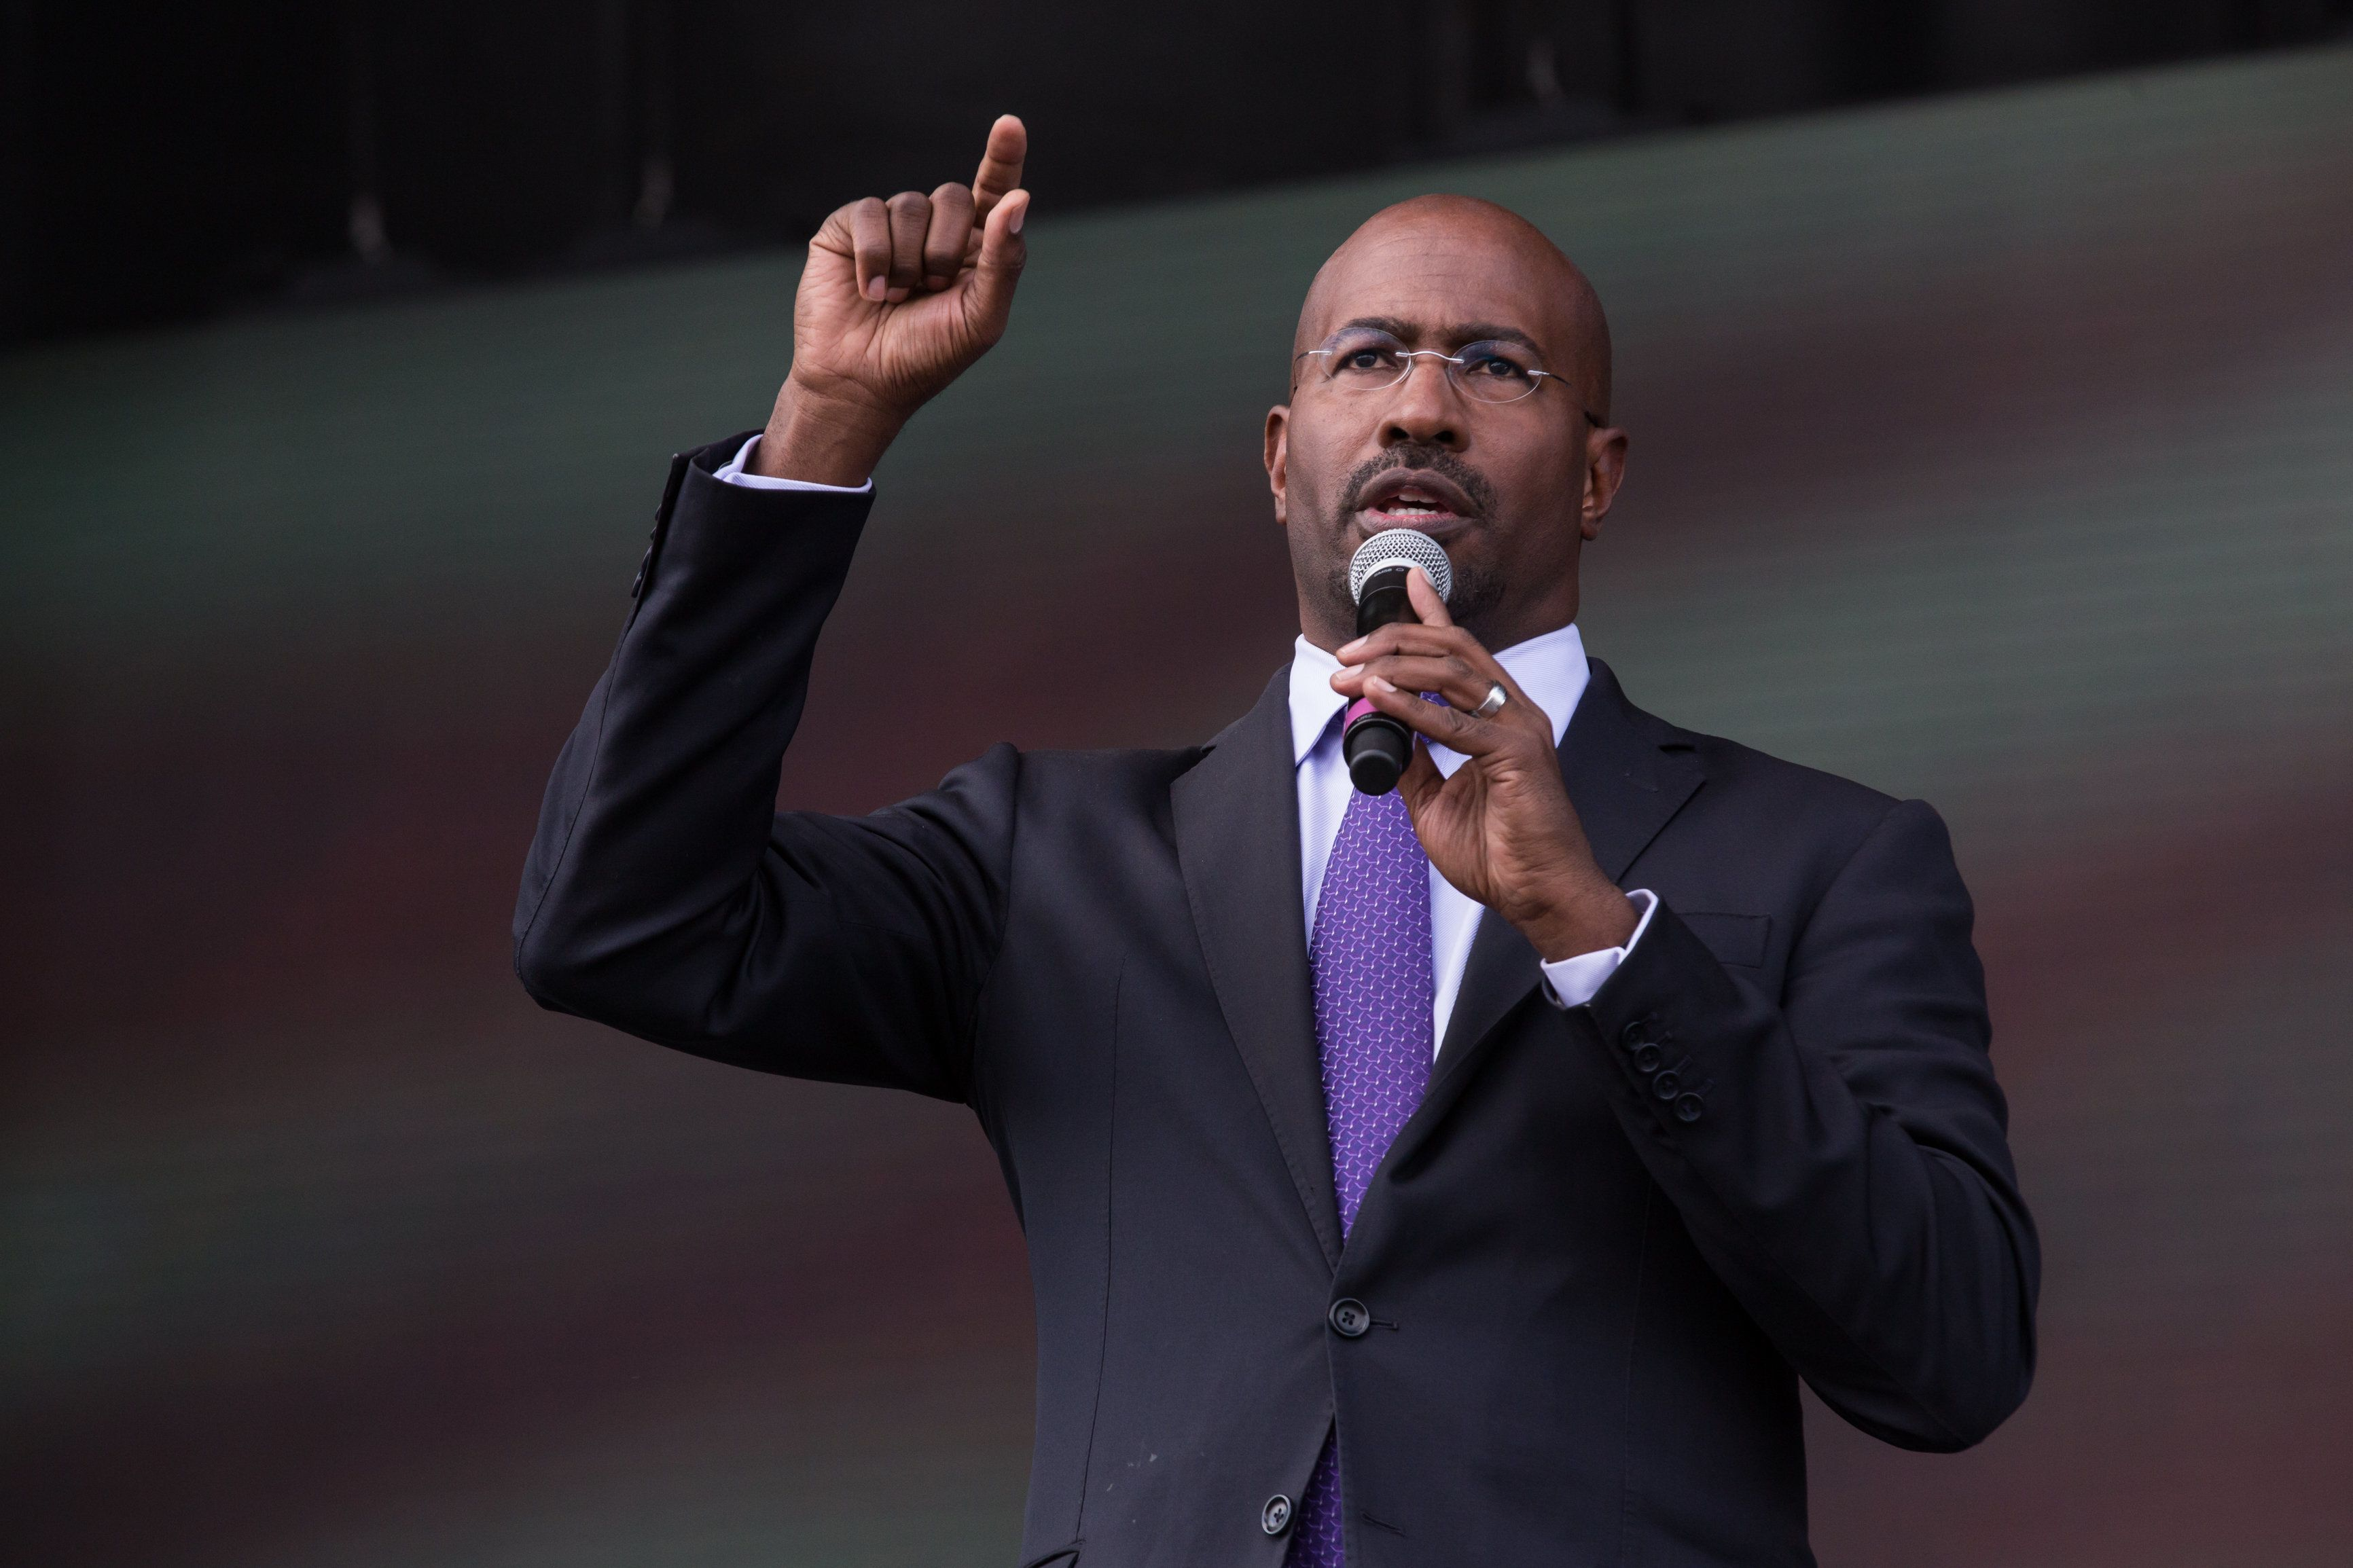 Political activist/commentator Van Jones speaks onstage at 2016 Many Rivers to Cross Festival at Bouckaert Farm on October 1, 2016 in Fairburn, Georgia. (Photo by Cheriss May/NurPhoto via Getty Images)